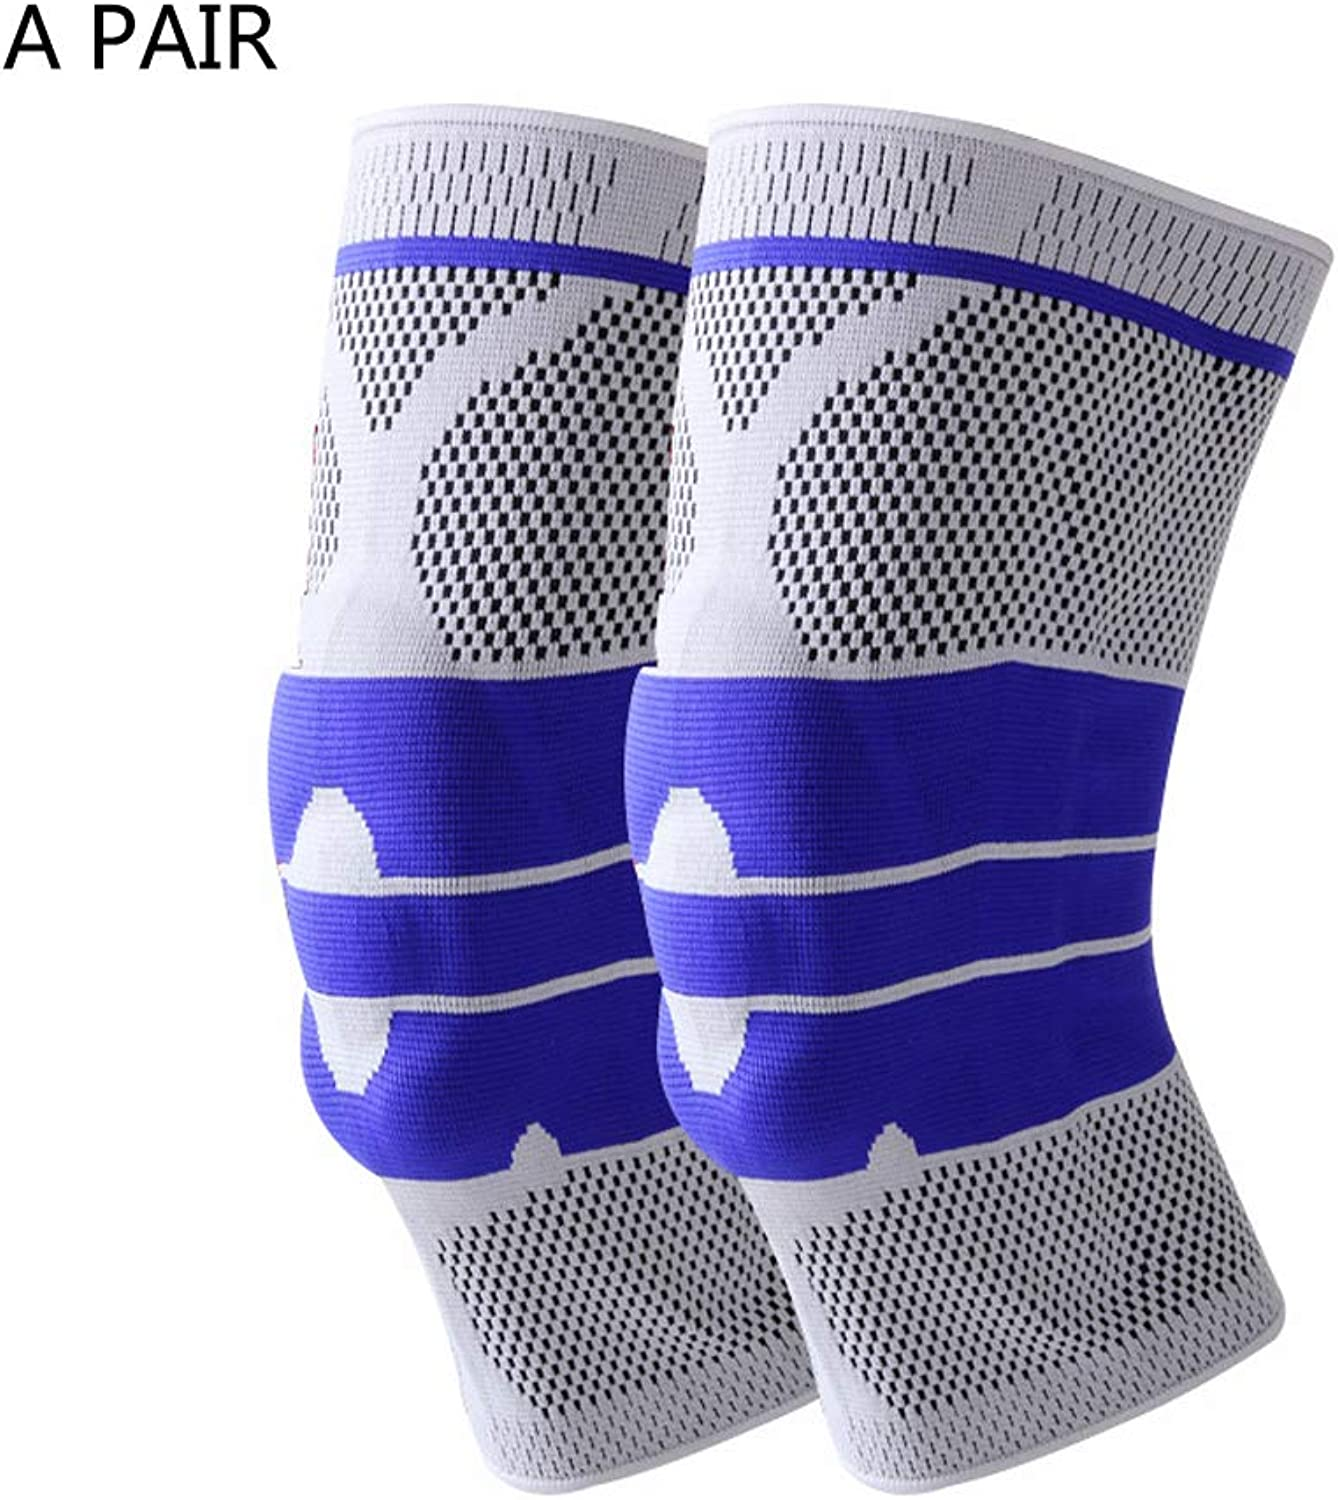 Knee Support for Men and Women,Knee Brace for Arthritis Compression Knee Sleeves for Pain Relief Anti Slip Breathable for Joint Pain Arthritis Ligament Injury Ideal for Volleyball Basketball etc